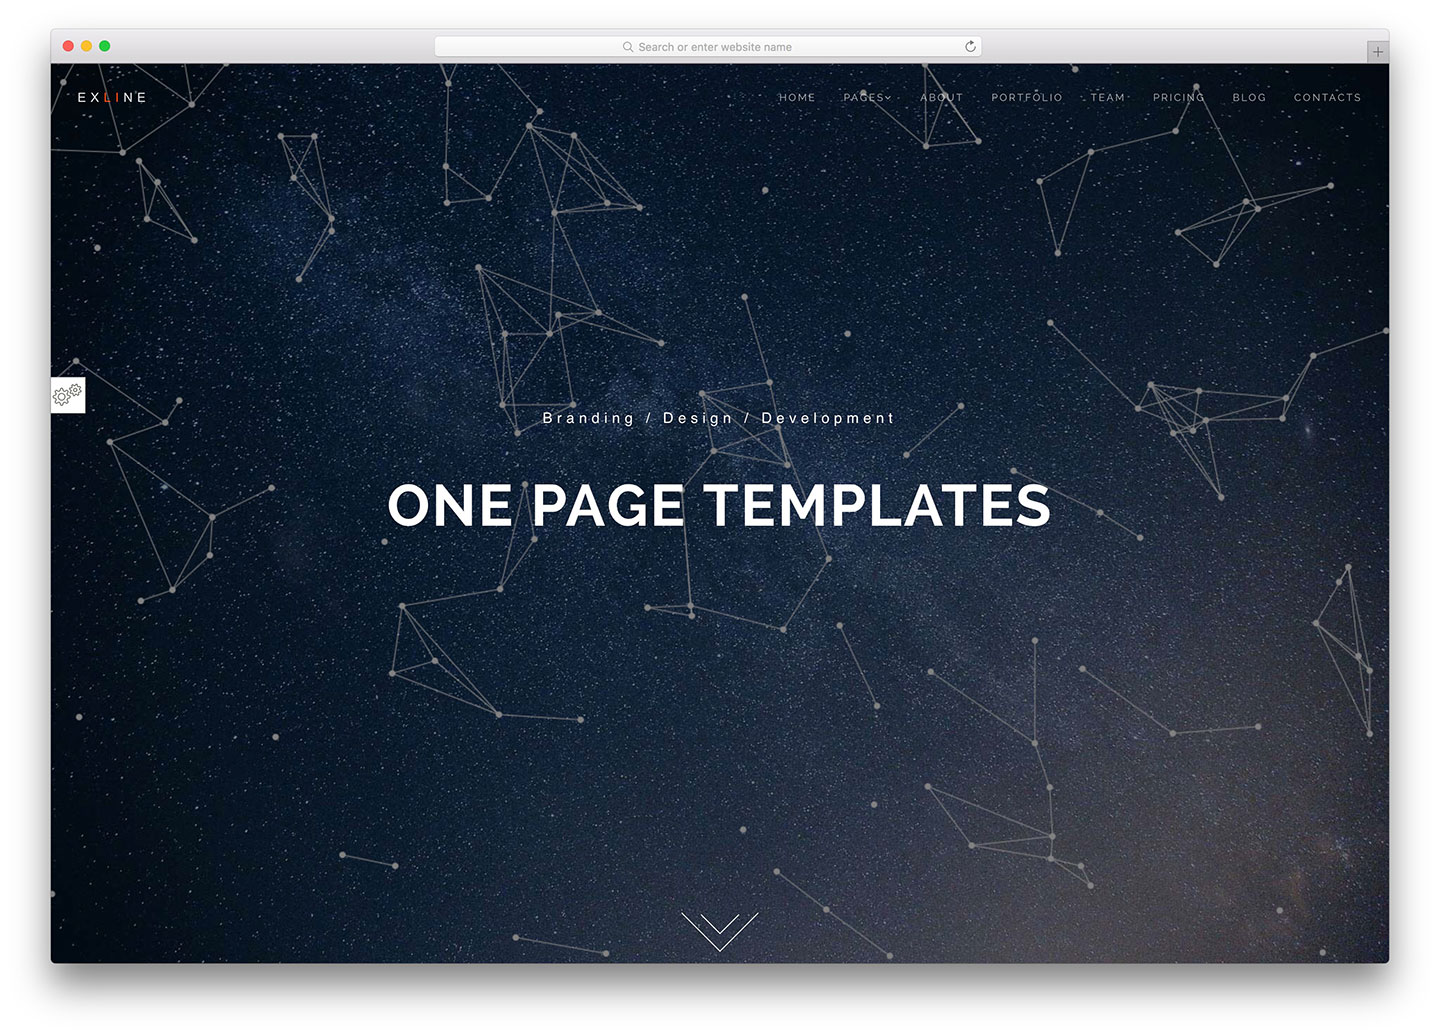 18 Best One Page Website Templates With Smooth Parallax Scrolling [HTML & WordPress] 2017